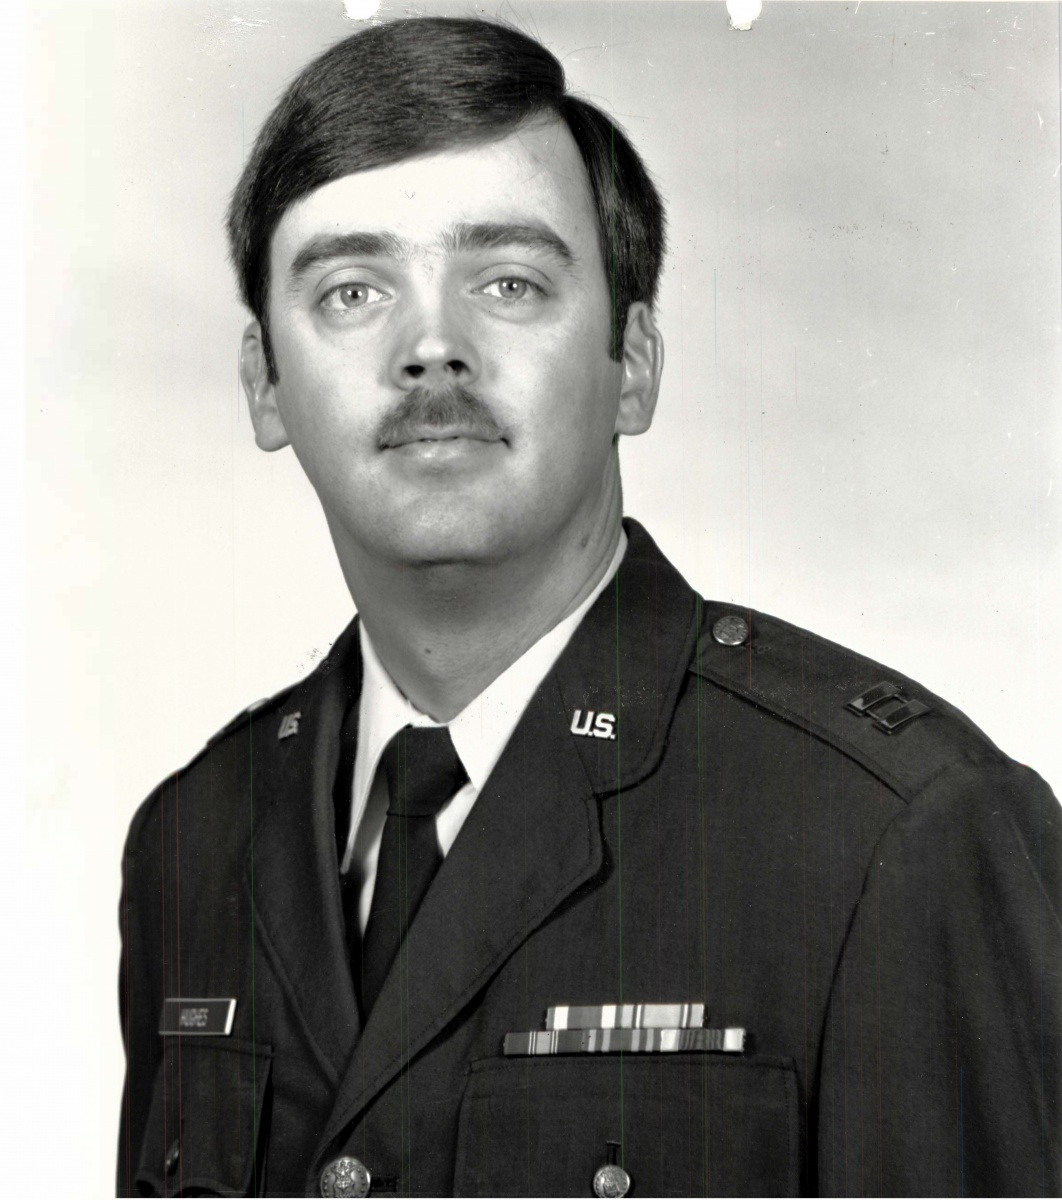 Air Force captain William Howard Hughes